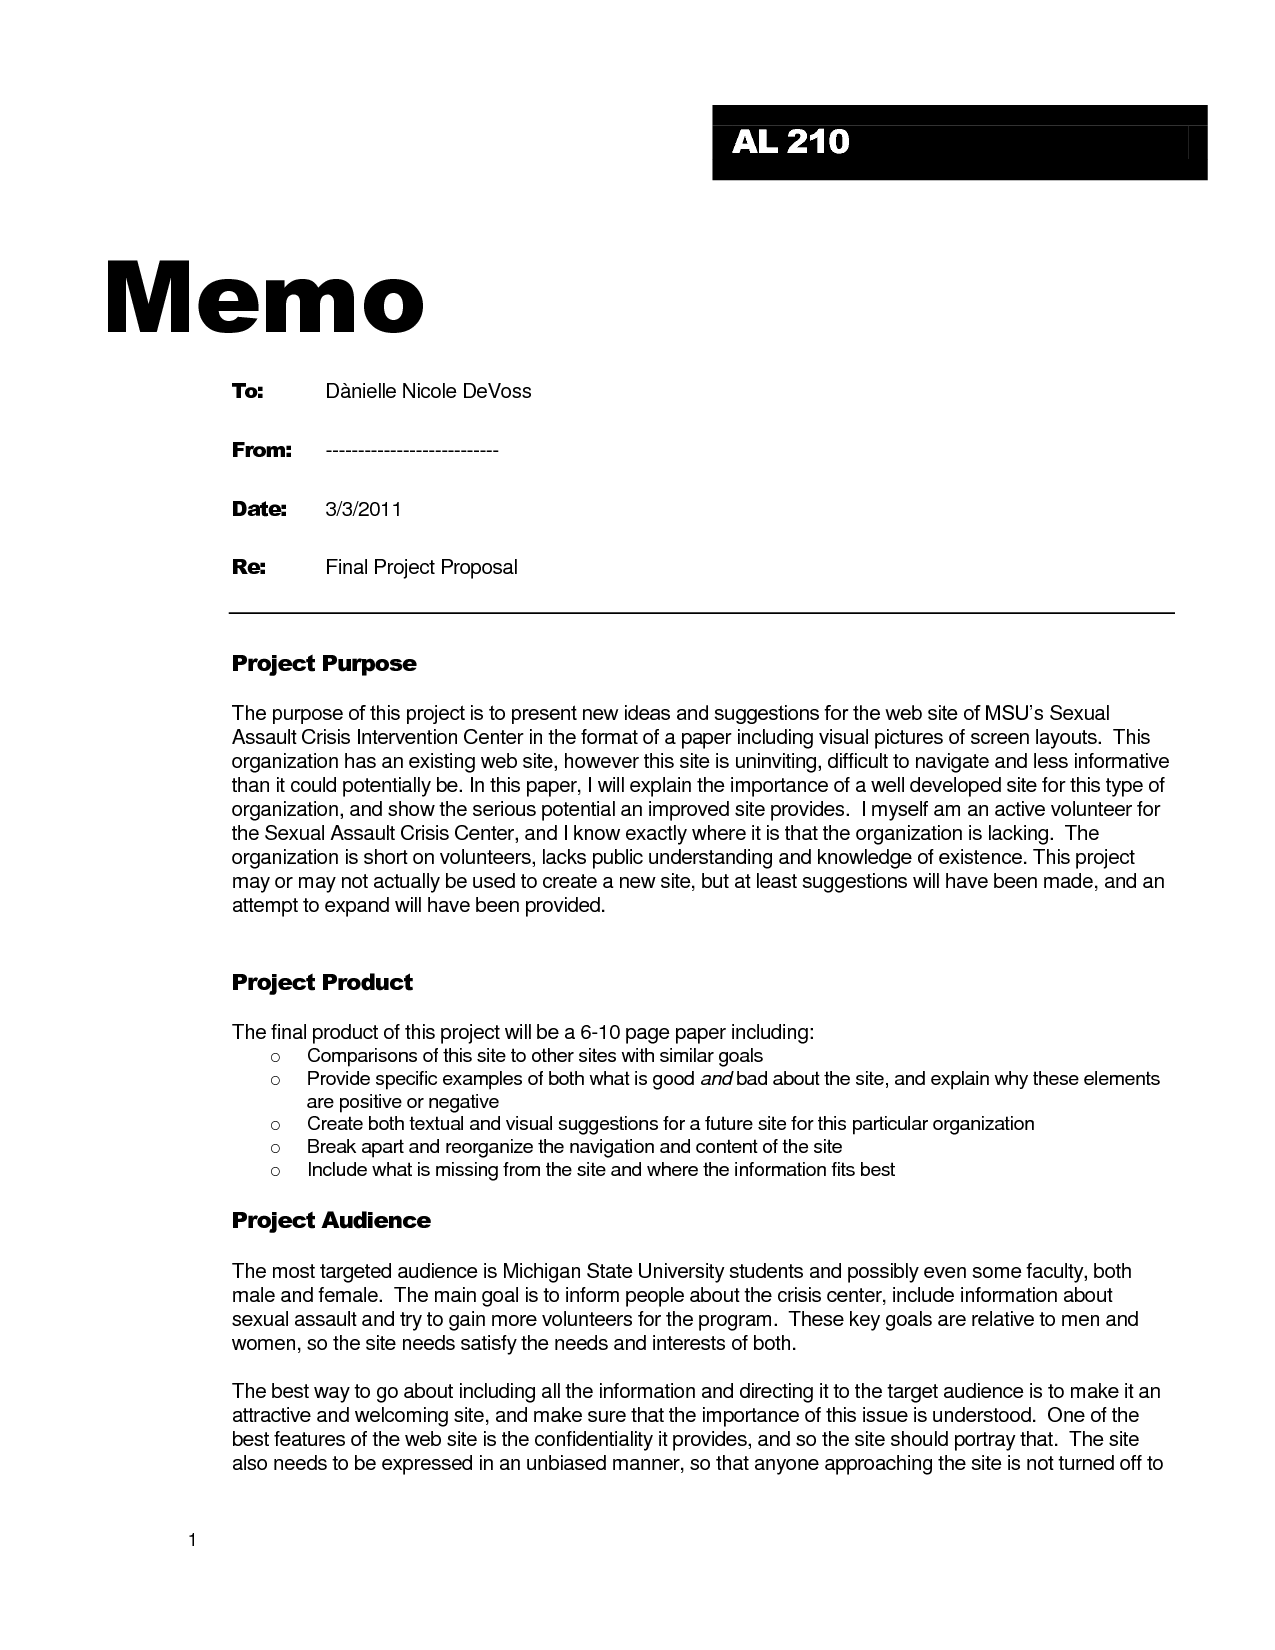 12 Best Photos of Proposal Memo Example - Business Proposal Memo